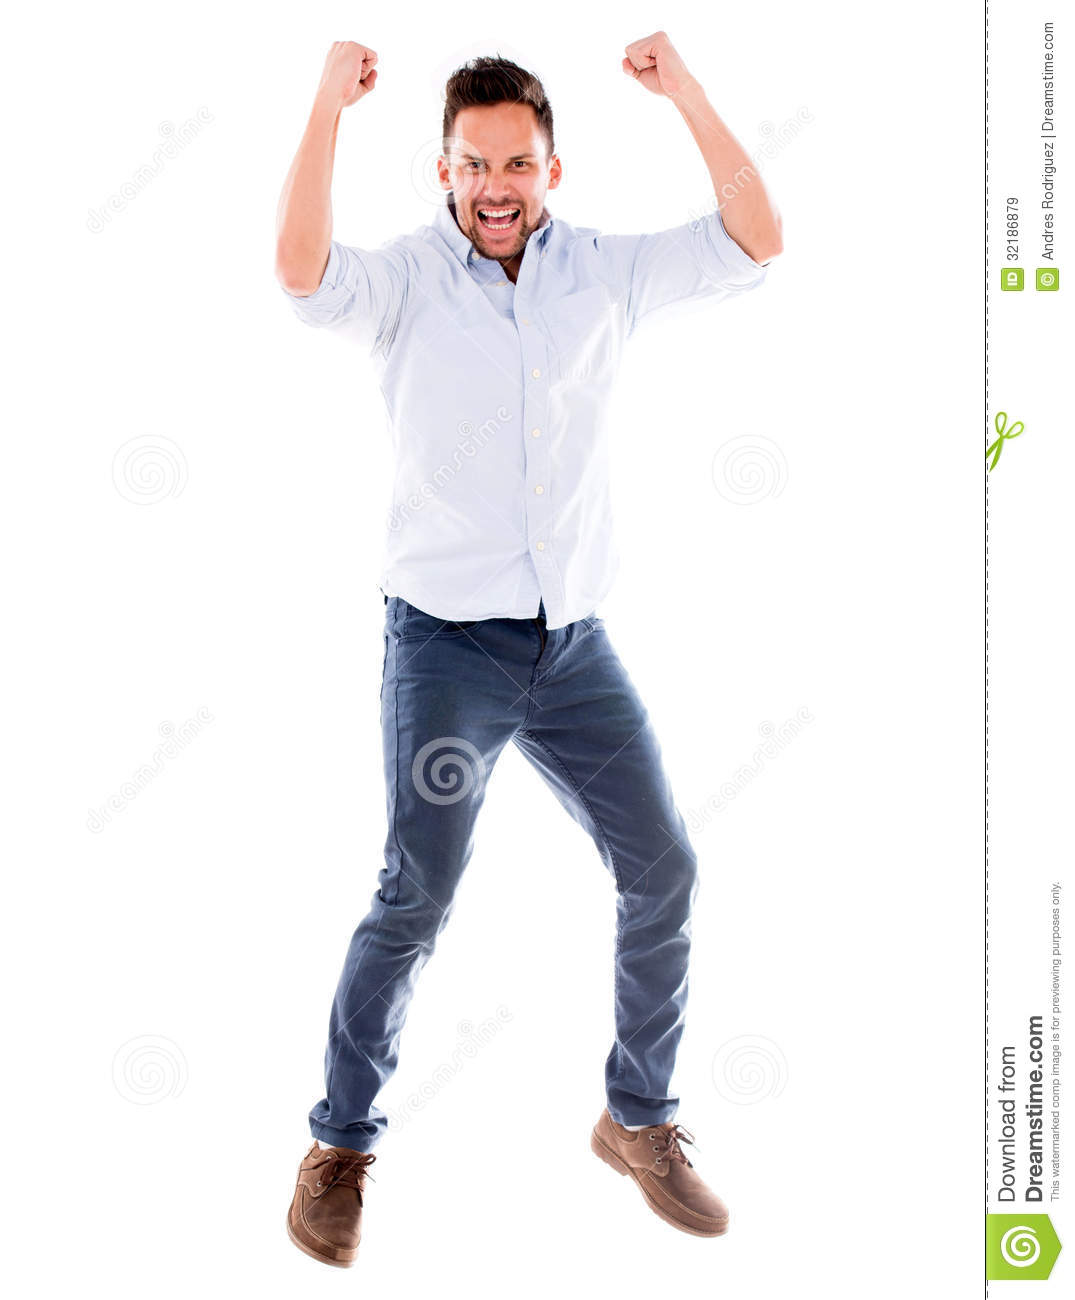 happy-man-jumping-excitement-isolated-ov